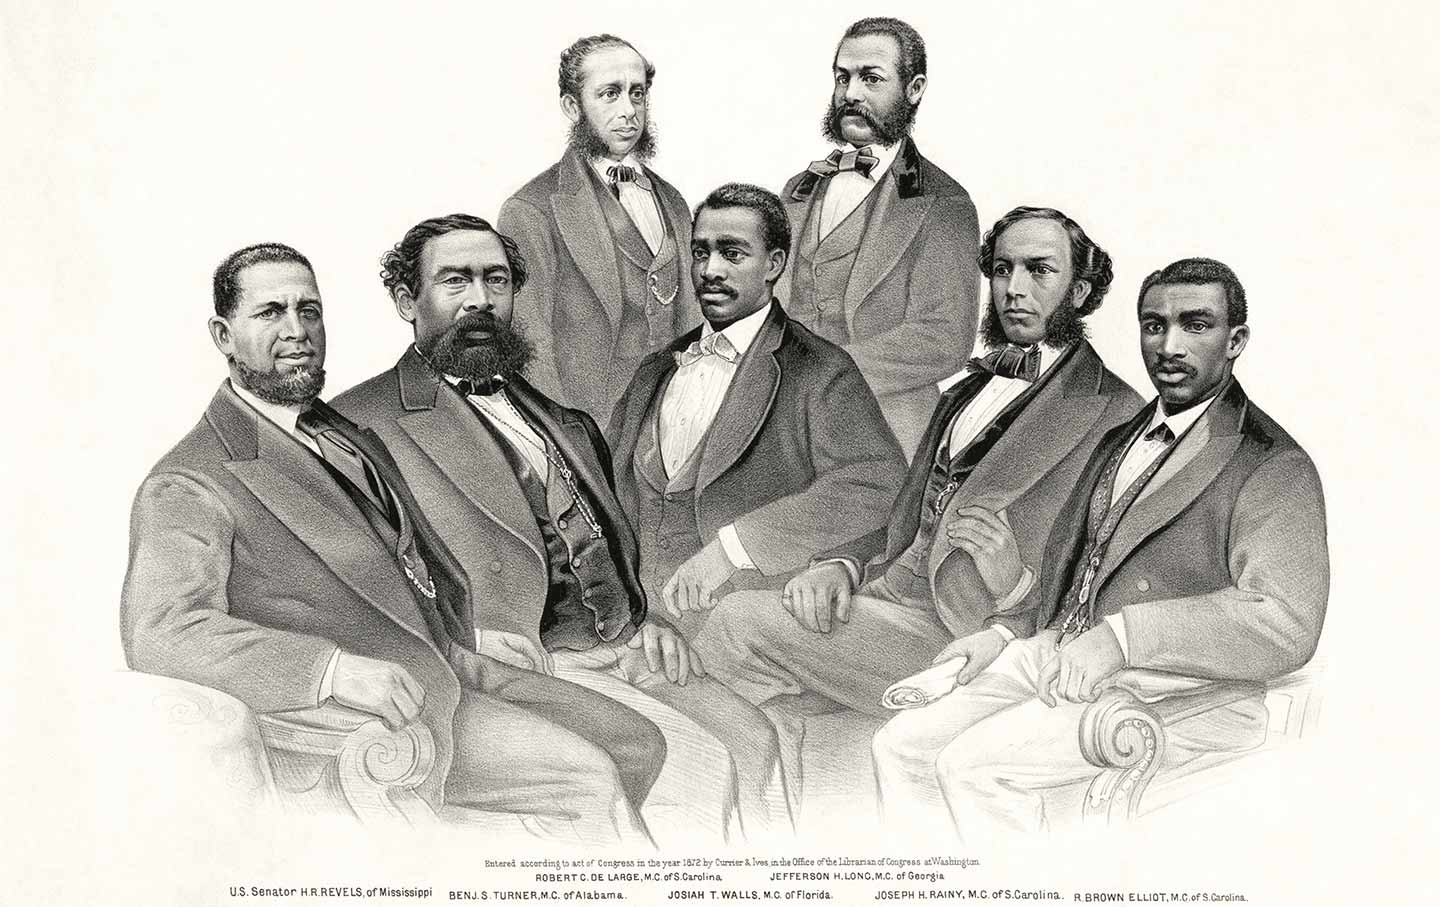 american politics in the years following reconstruction Politics of reconstruction well before the end of the civil war, president abraham lincoln began following lincoln's assassination, the task of implementing reconstruction fell to his vice a bill was introduced in february 1866 to reauthorize the one‐year‐old freedmen's bureau and in fact, african americans took part in all the conventions and made up the majority of delegates in south carolina.